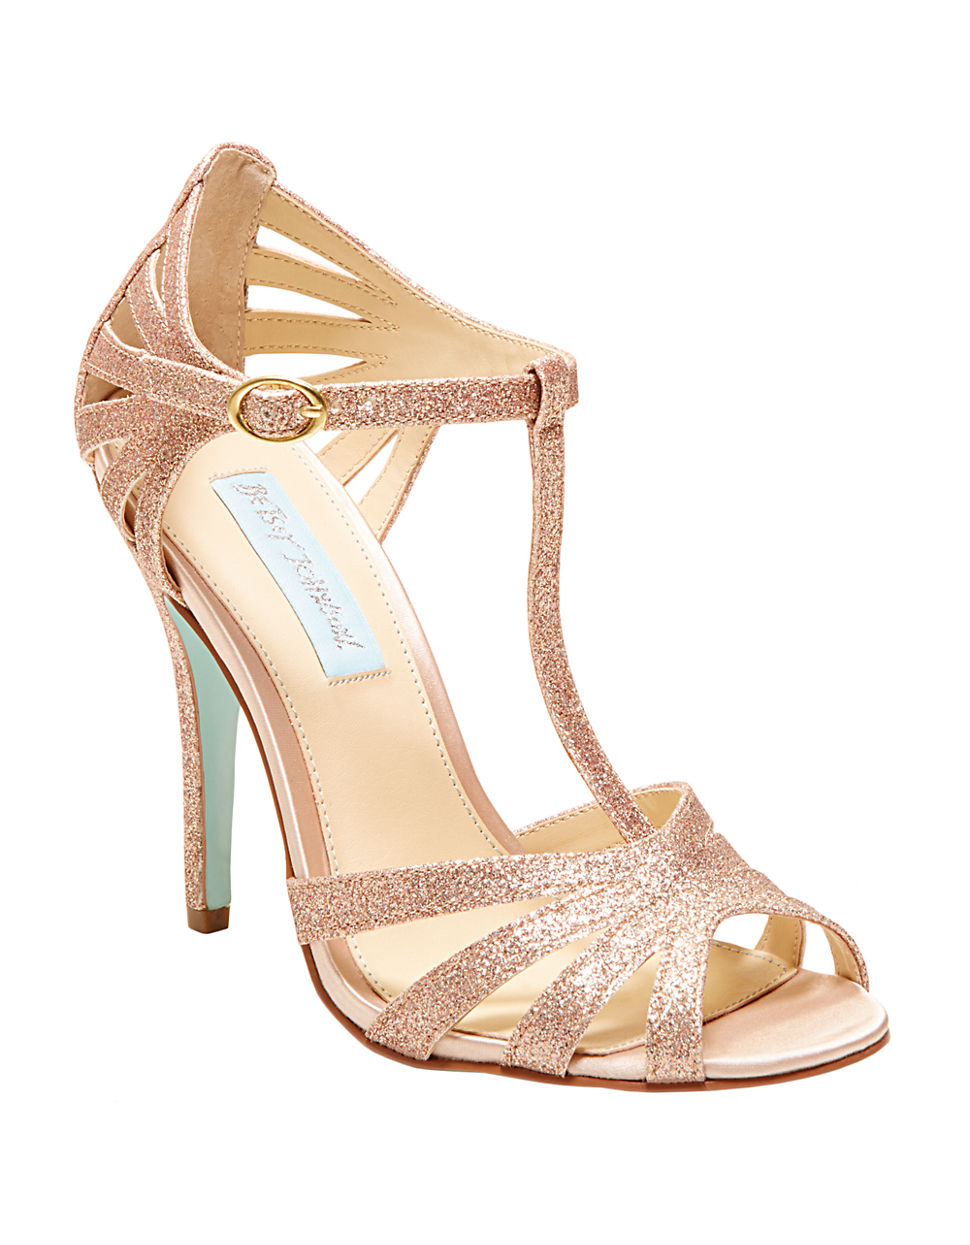 Evening & Bridal Shoes: Wedding Shoes & More | Lord & Taylor